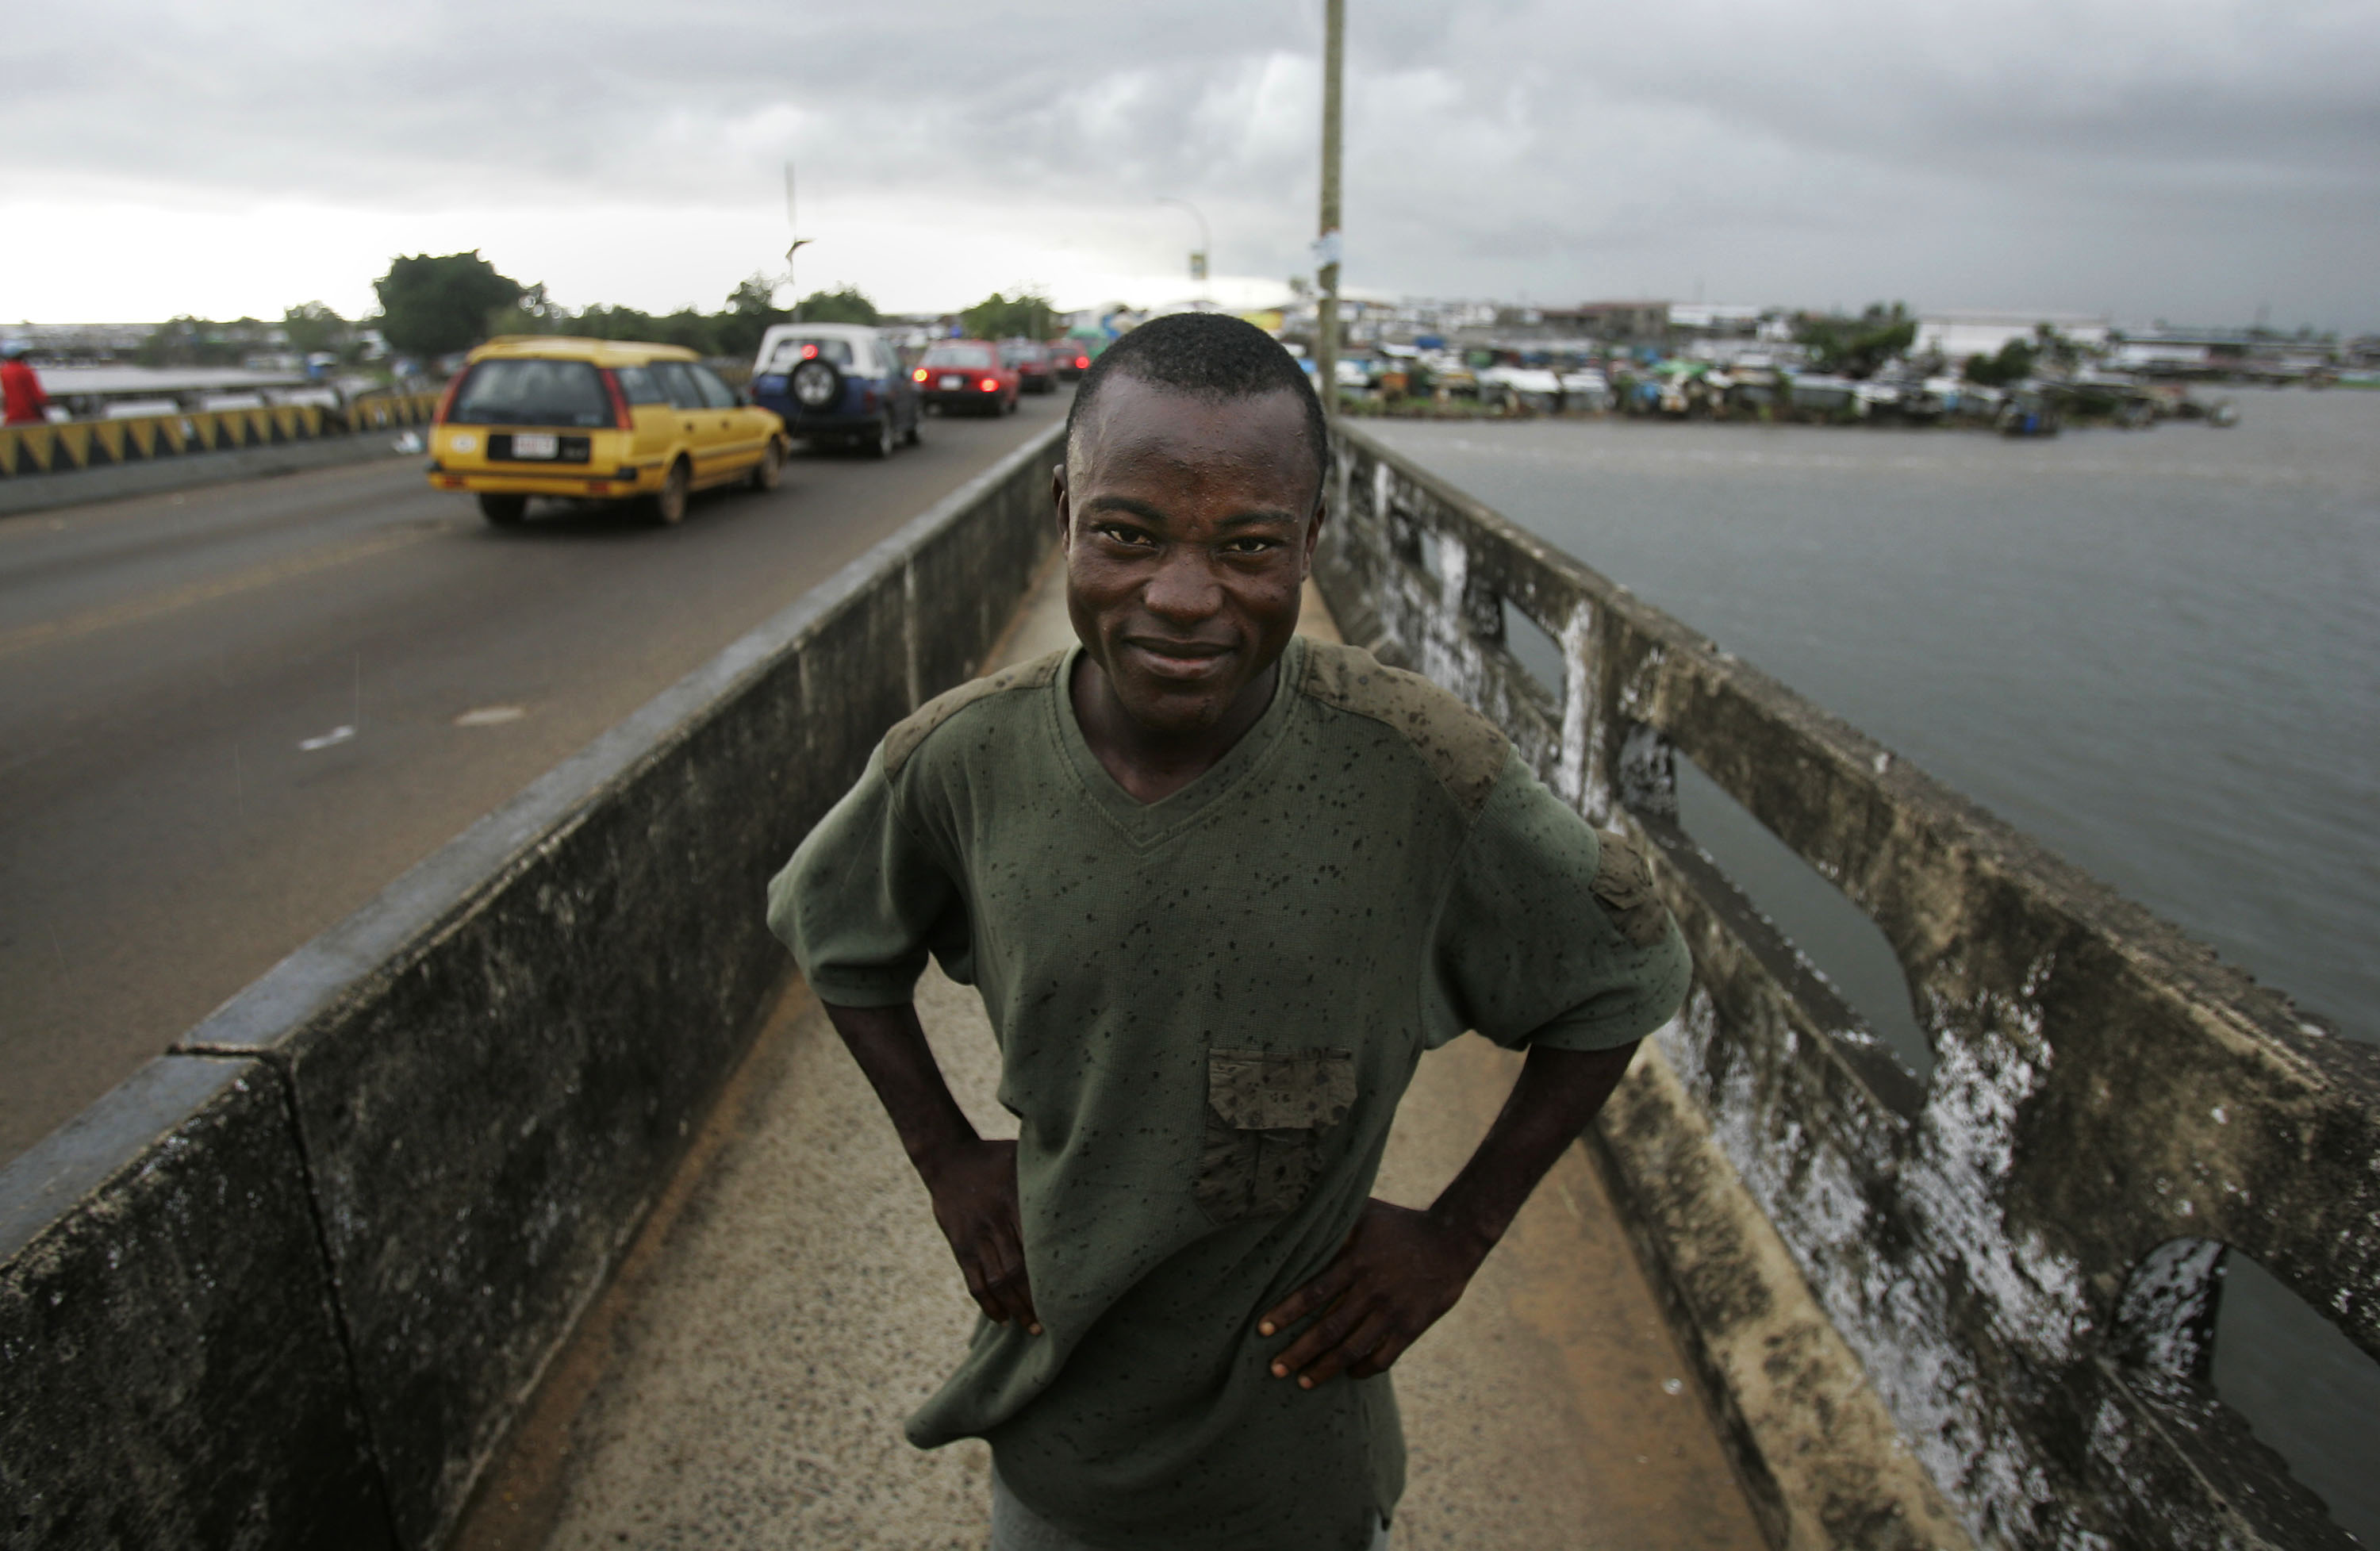 Liberia Then And Now: Portraits After War